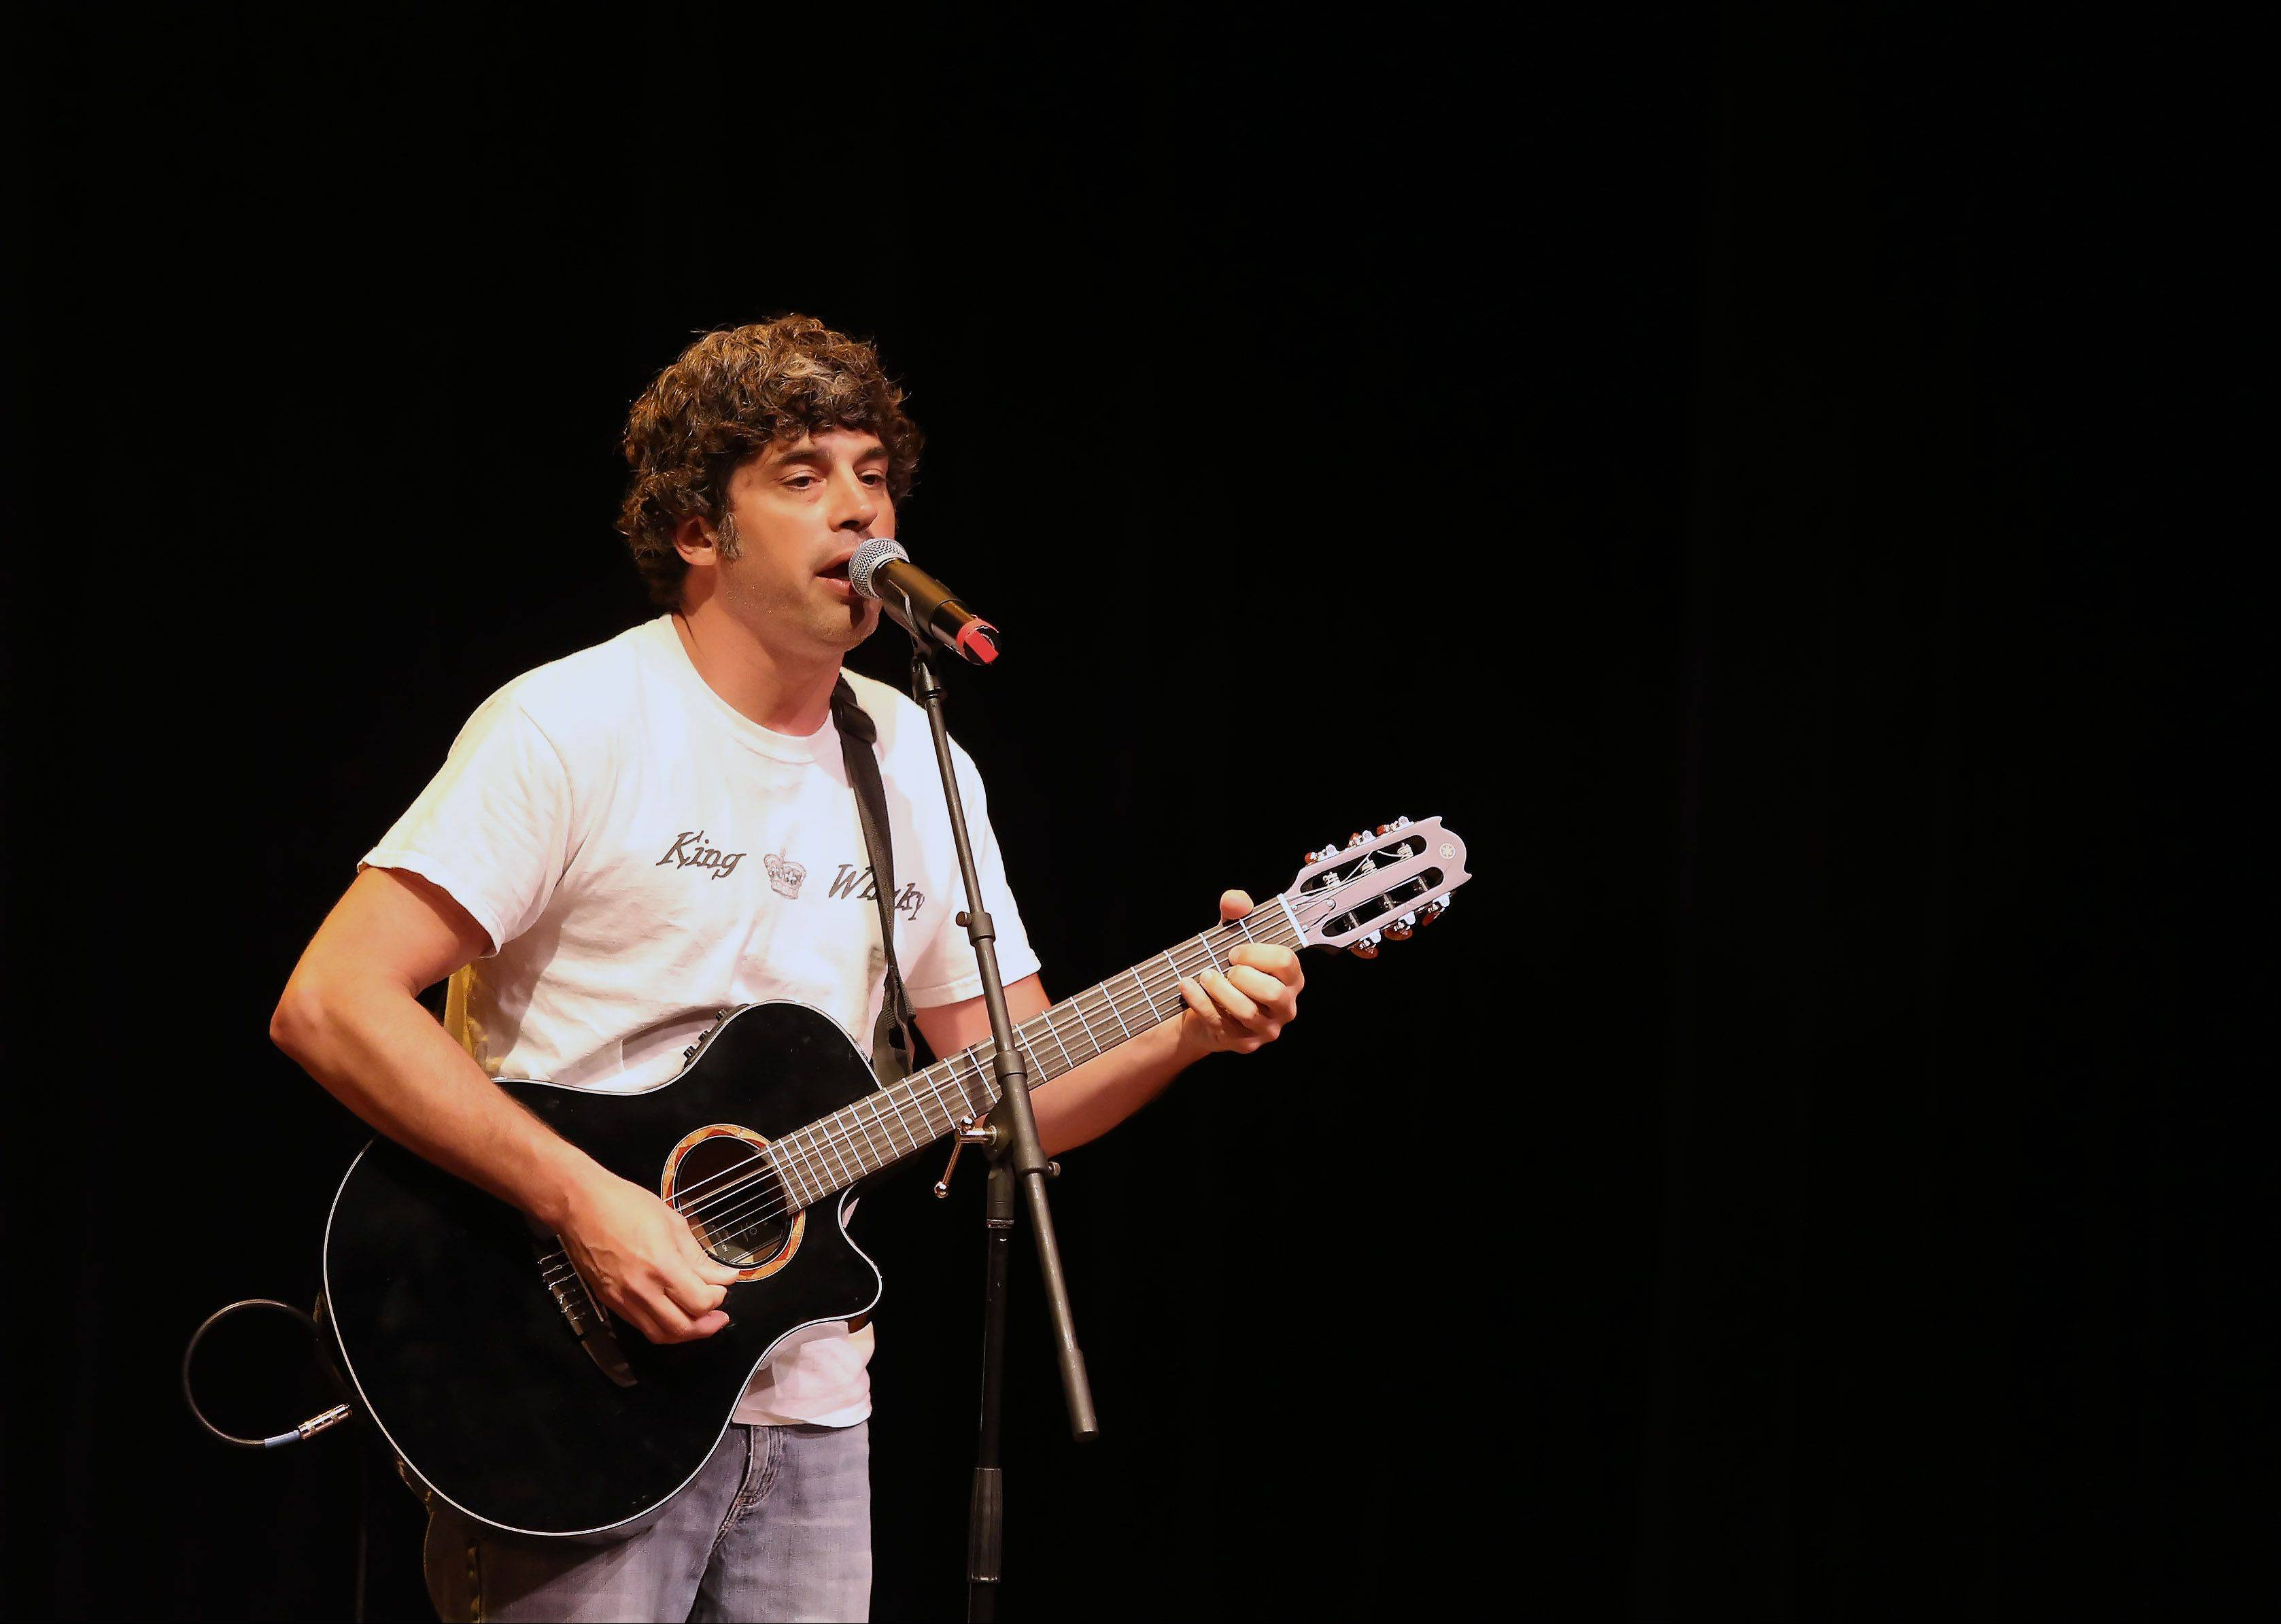 "Joe Calderone of the band King Whisky sings an original song called ""Cotton Candy"" during the first round of finalists for the Suburban Chicago's Got Talent competition Sunday night at the Metropolis Performing Arts Centre in Arlington Heights. The summer-long talent contest is presented by the Daily Herald and sponsored by the Arlington Heights Chamber of Commerce."